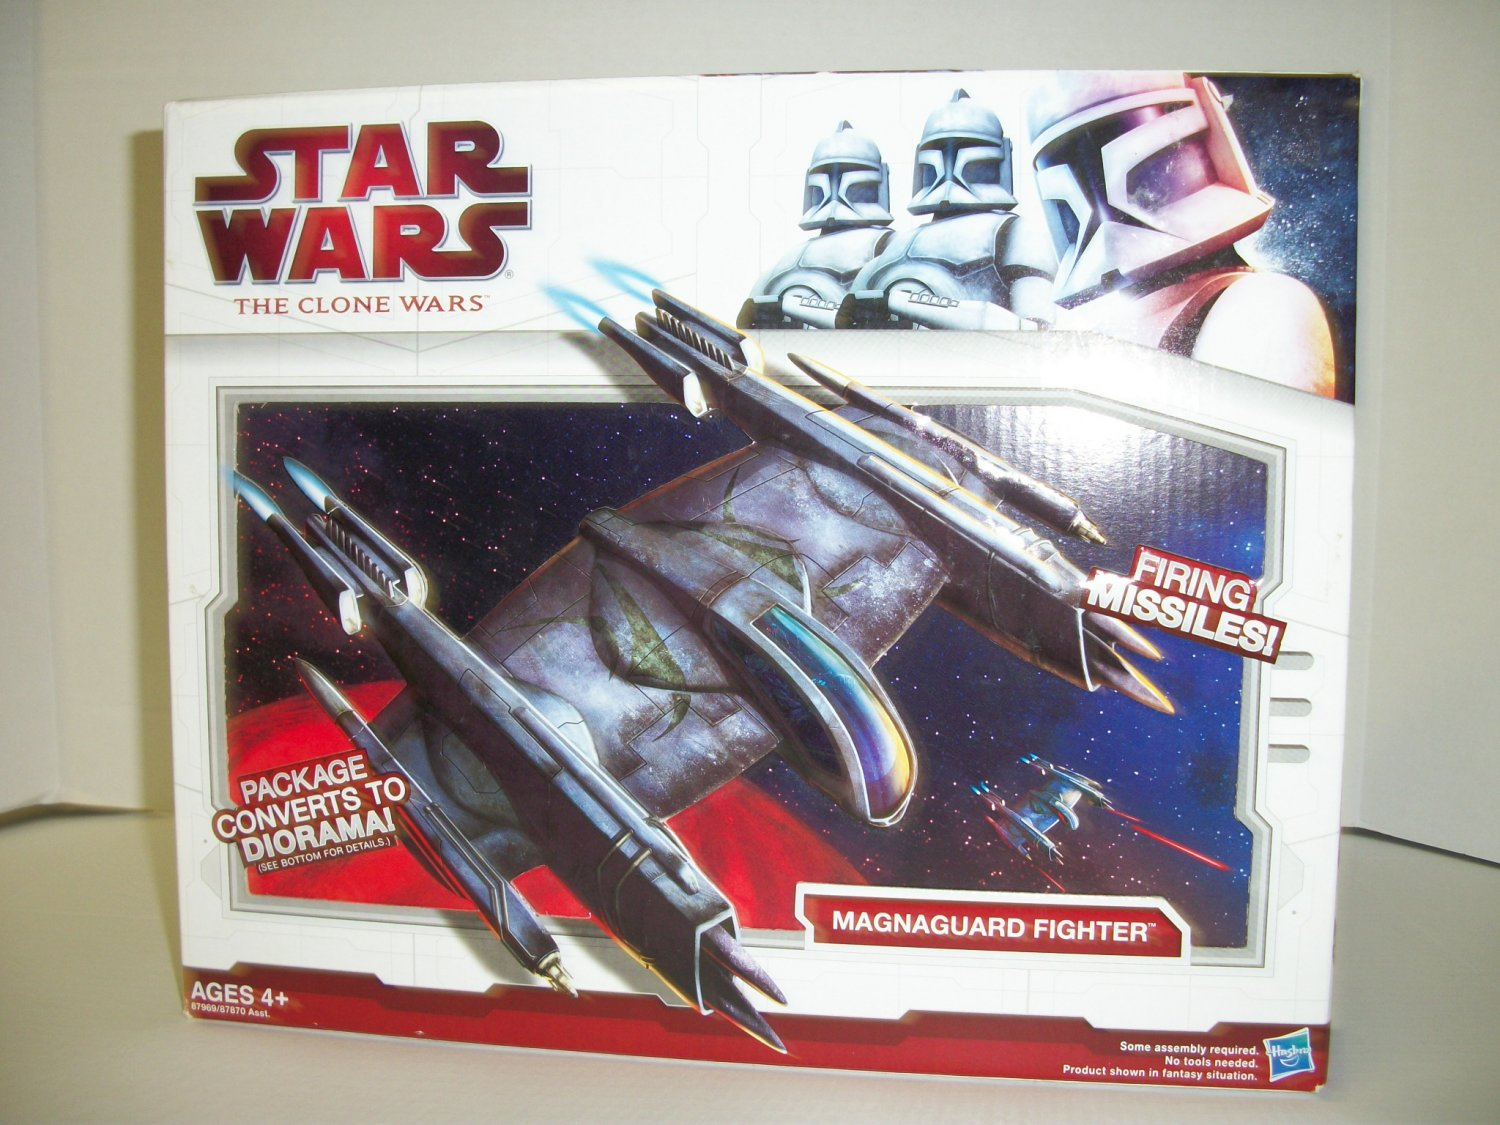 STAR WARS MAGNAGUARD FIGHTER Vehicle